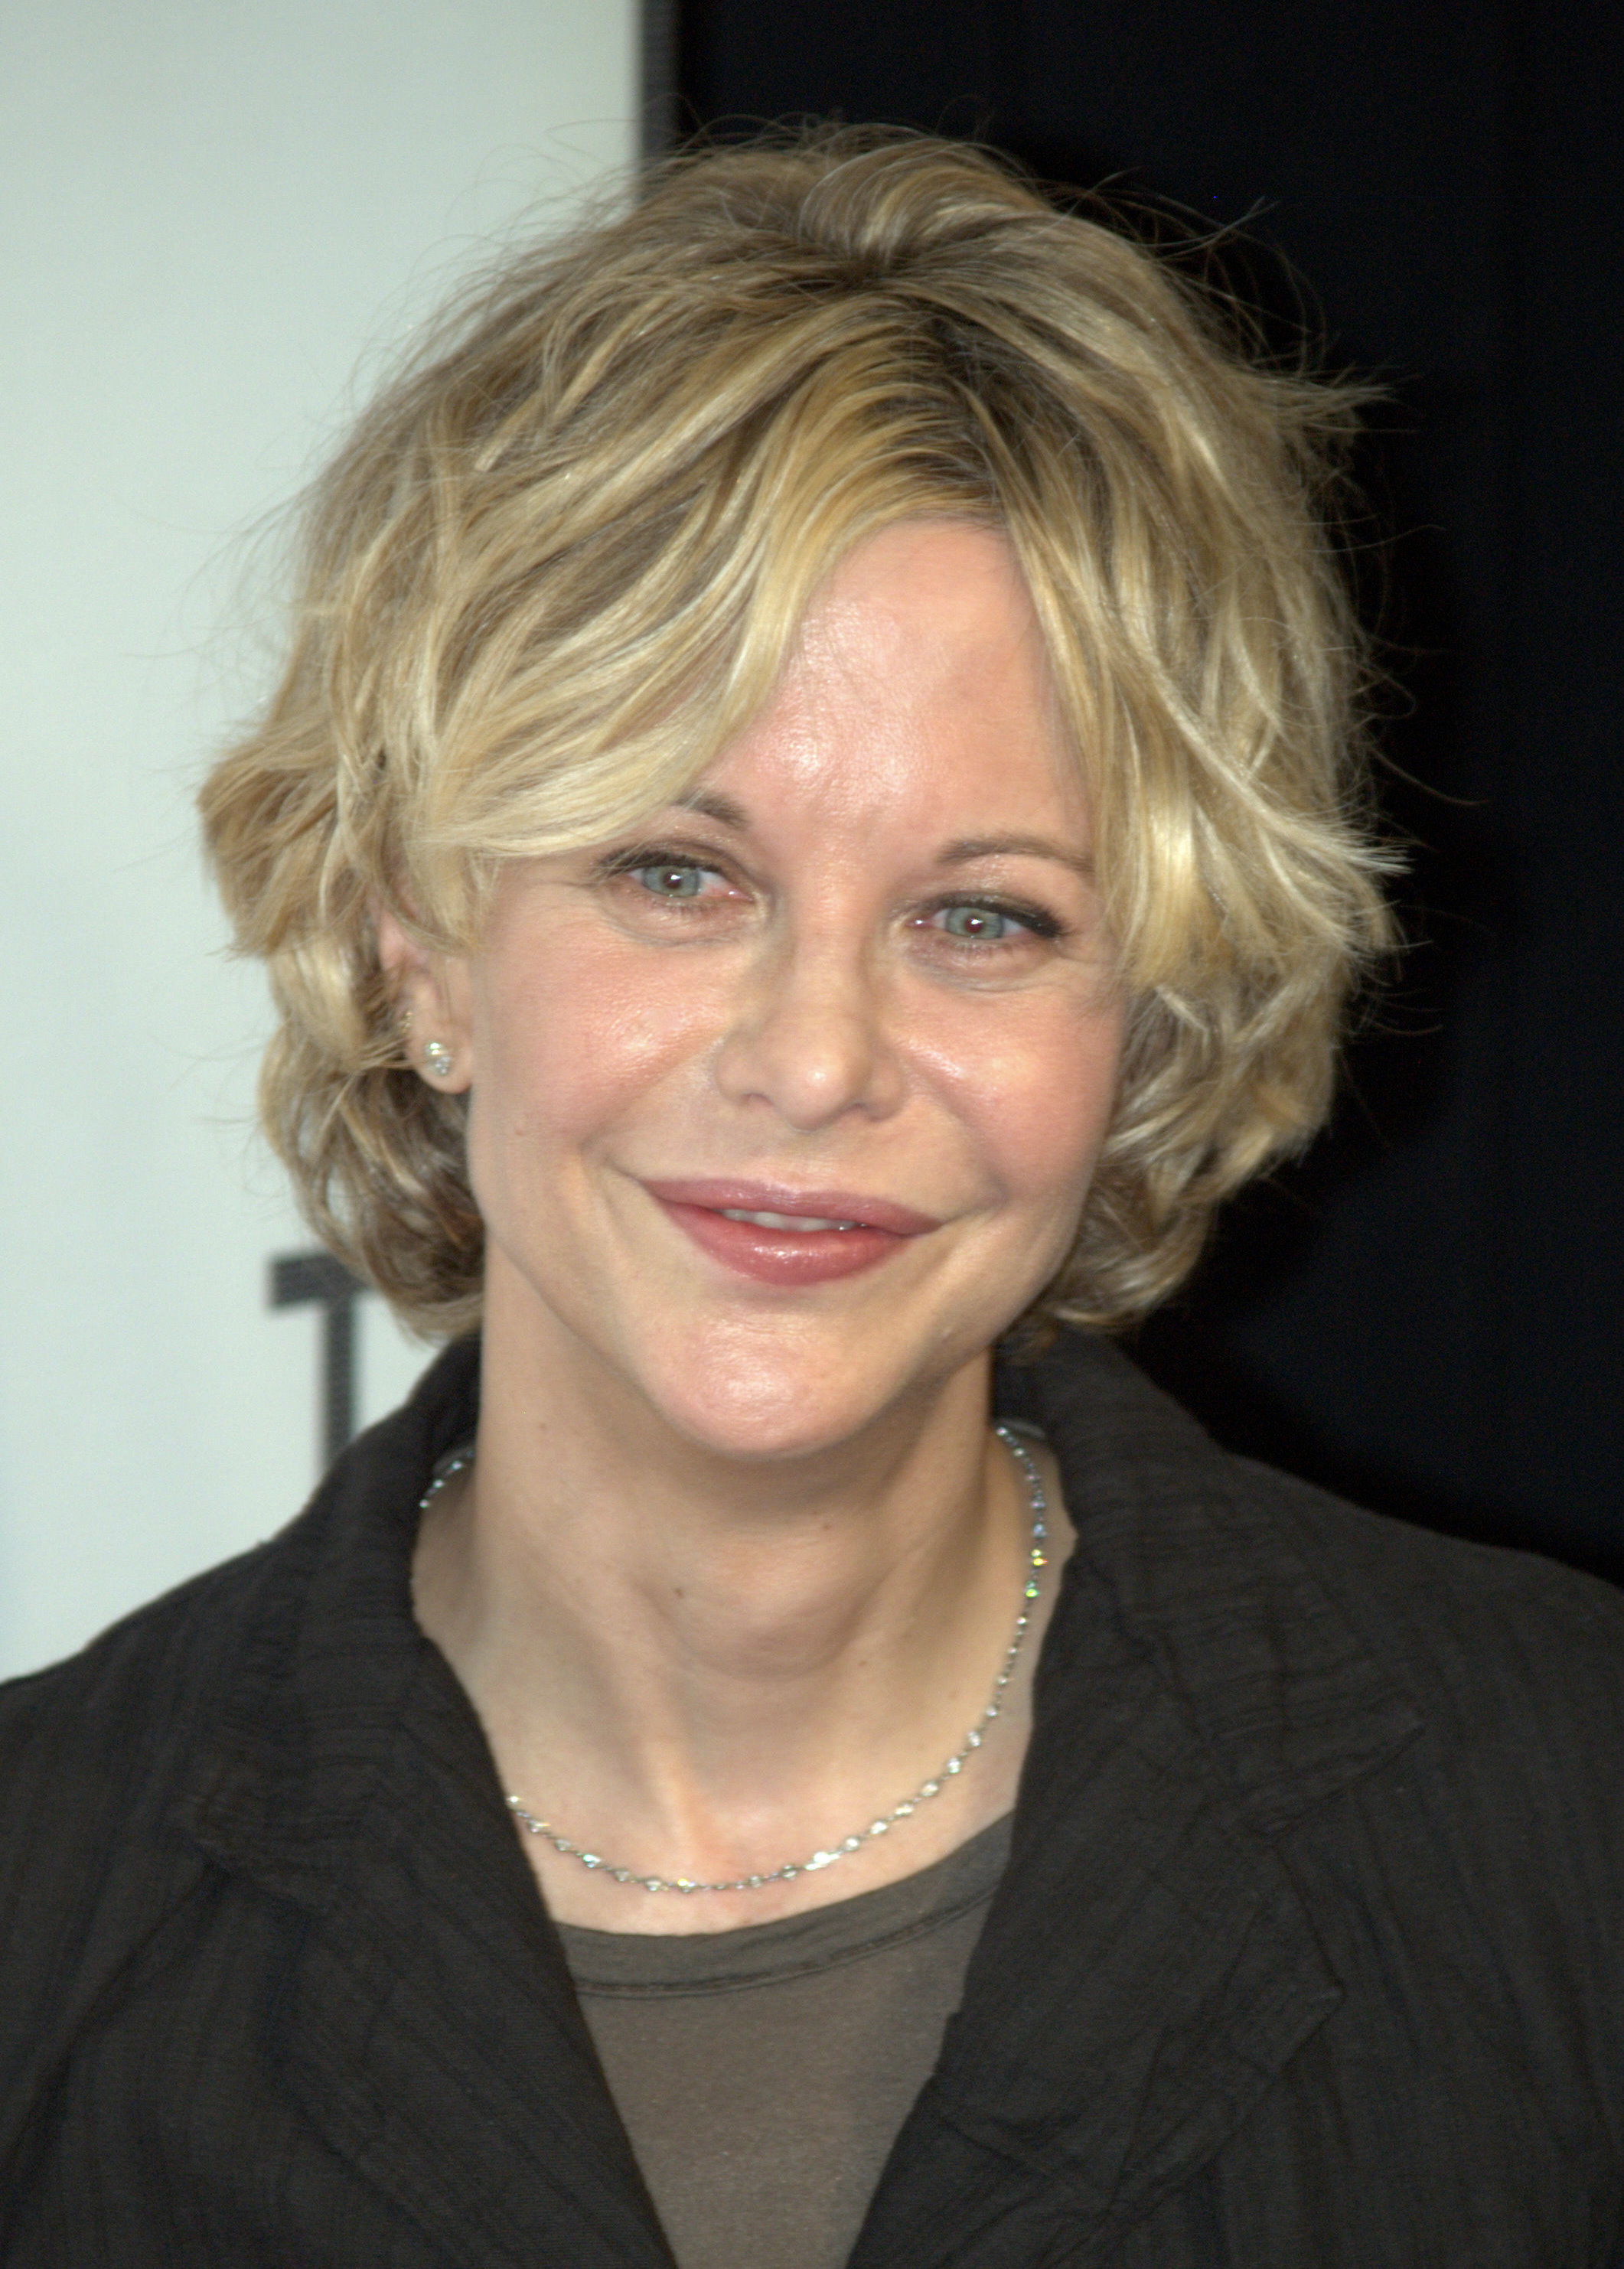 Meg Ryan plastic surgery before and after photos lip implants, botox 1